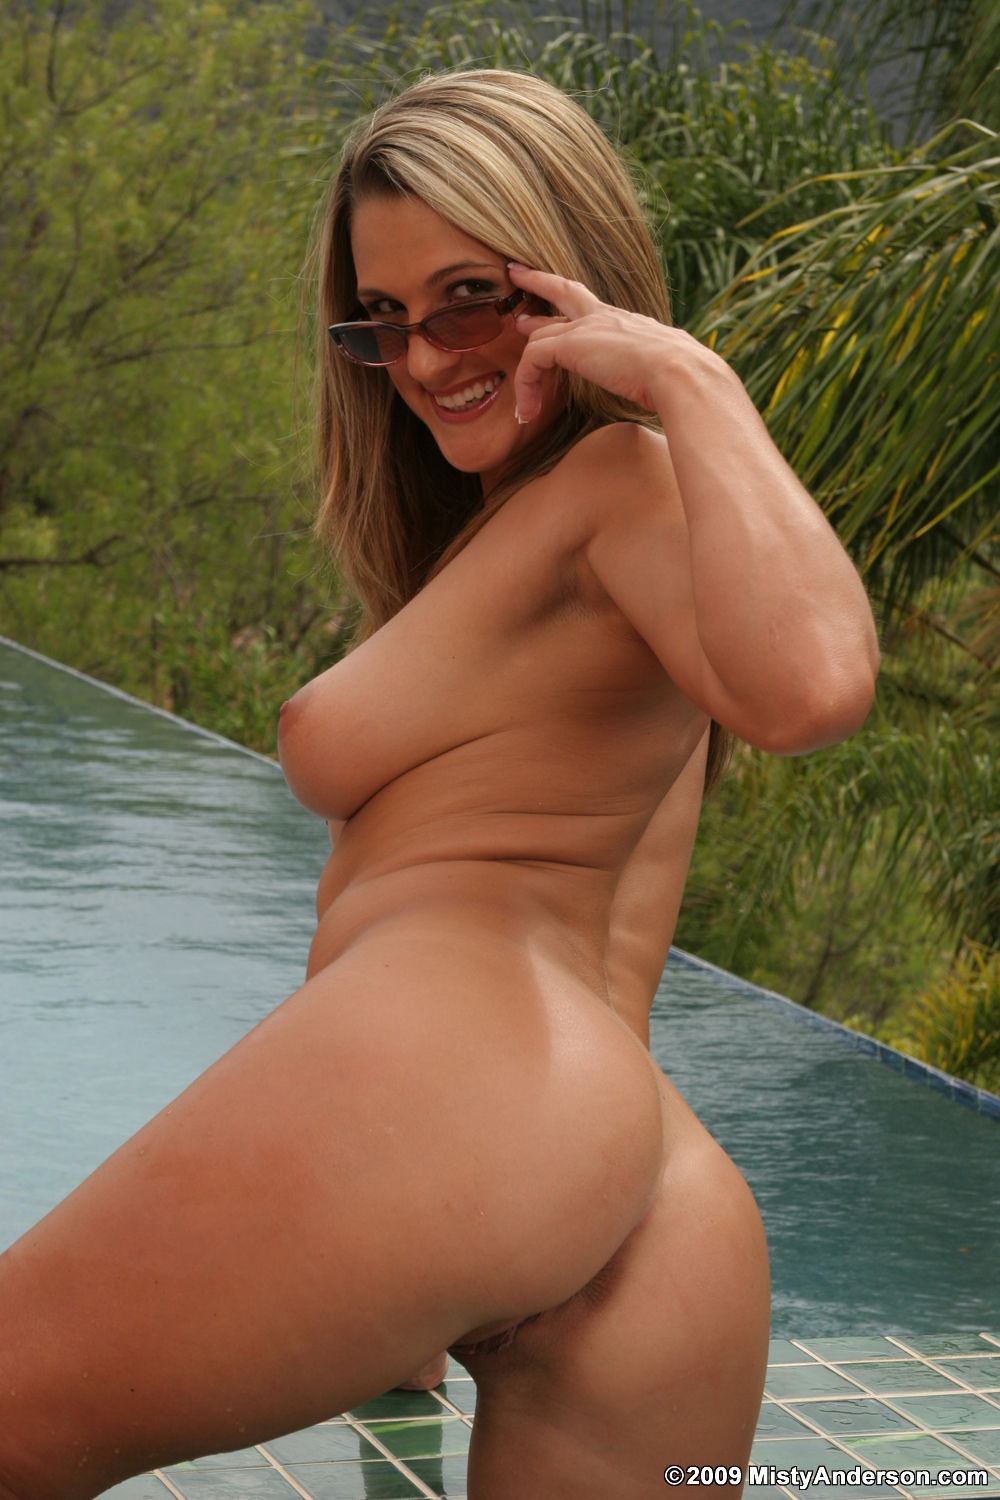 Misty anderson nude pics — photo 14